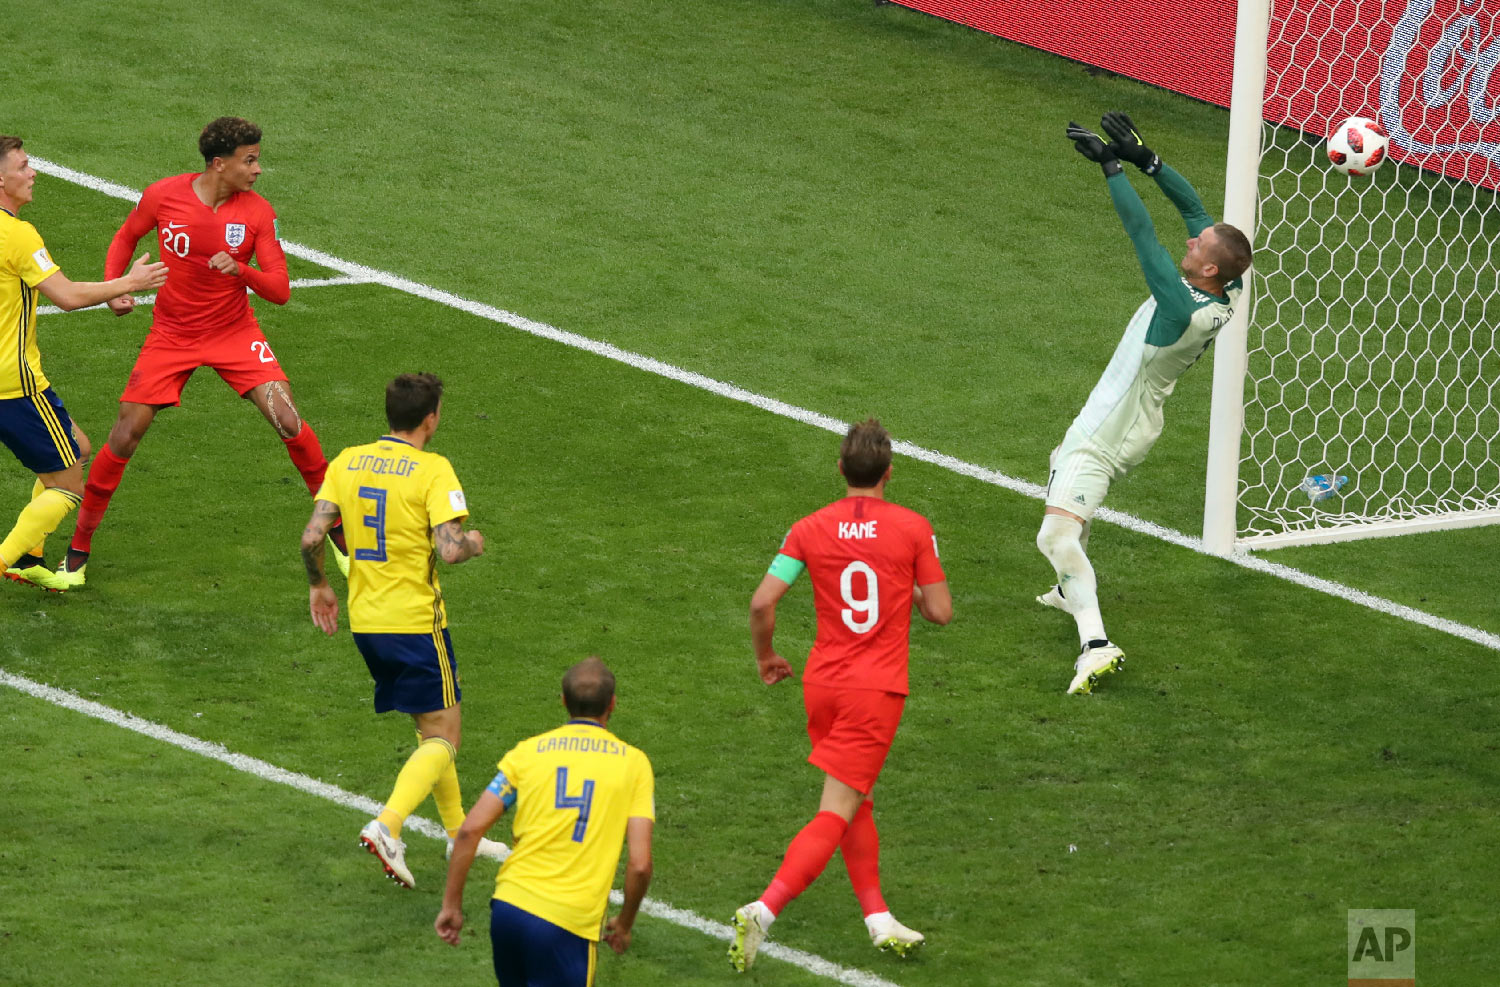 England's Dele Alli, 2nd left, scores his side's second goal during the quarterfinal match between Sweden and England at the 2018 soccer World Cup in the Samara Arena, in Samara, Russia, Saturday, July 7, 2018. (AP Photo/Thanassis Stavrakis)